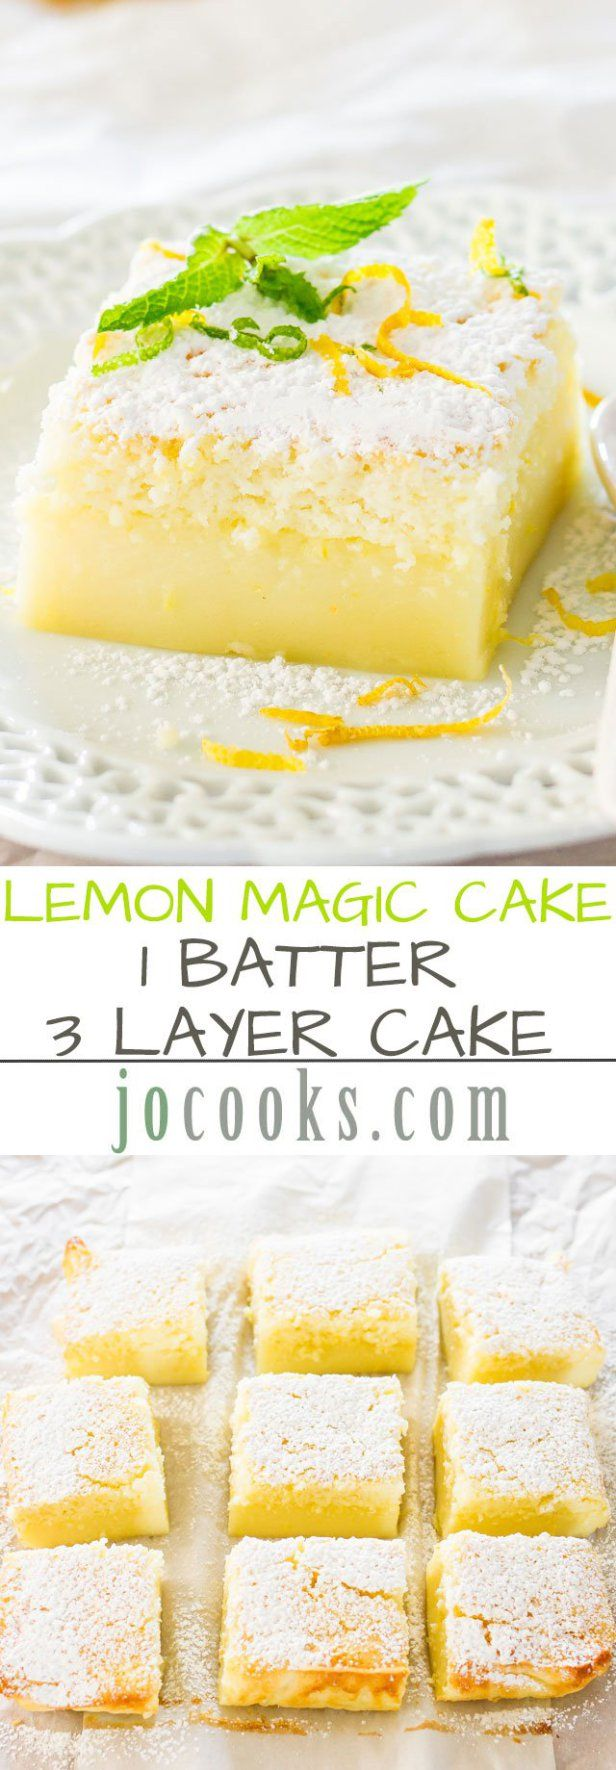 Lemon Magic Cake Recipe via Jo Cooks - one simple batter that turns into a 3 layer cake. Simply magical. The popular magic cake now in lemon flavor. The BEST Easy Lemon Desserts and Treats Recipes - Perfect For Easter, Mother's Day Brunch, Bridal or Baby Showers and Pretty Spring and Summer Holiday Party Refreshments!